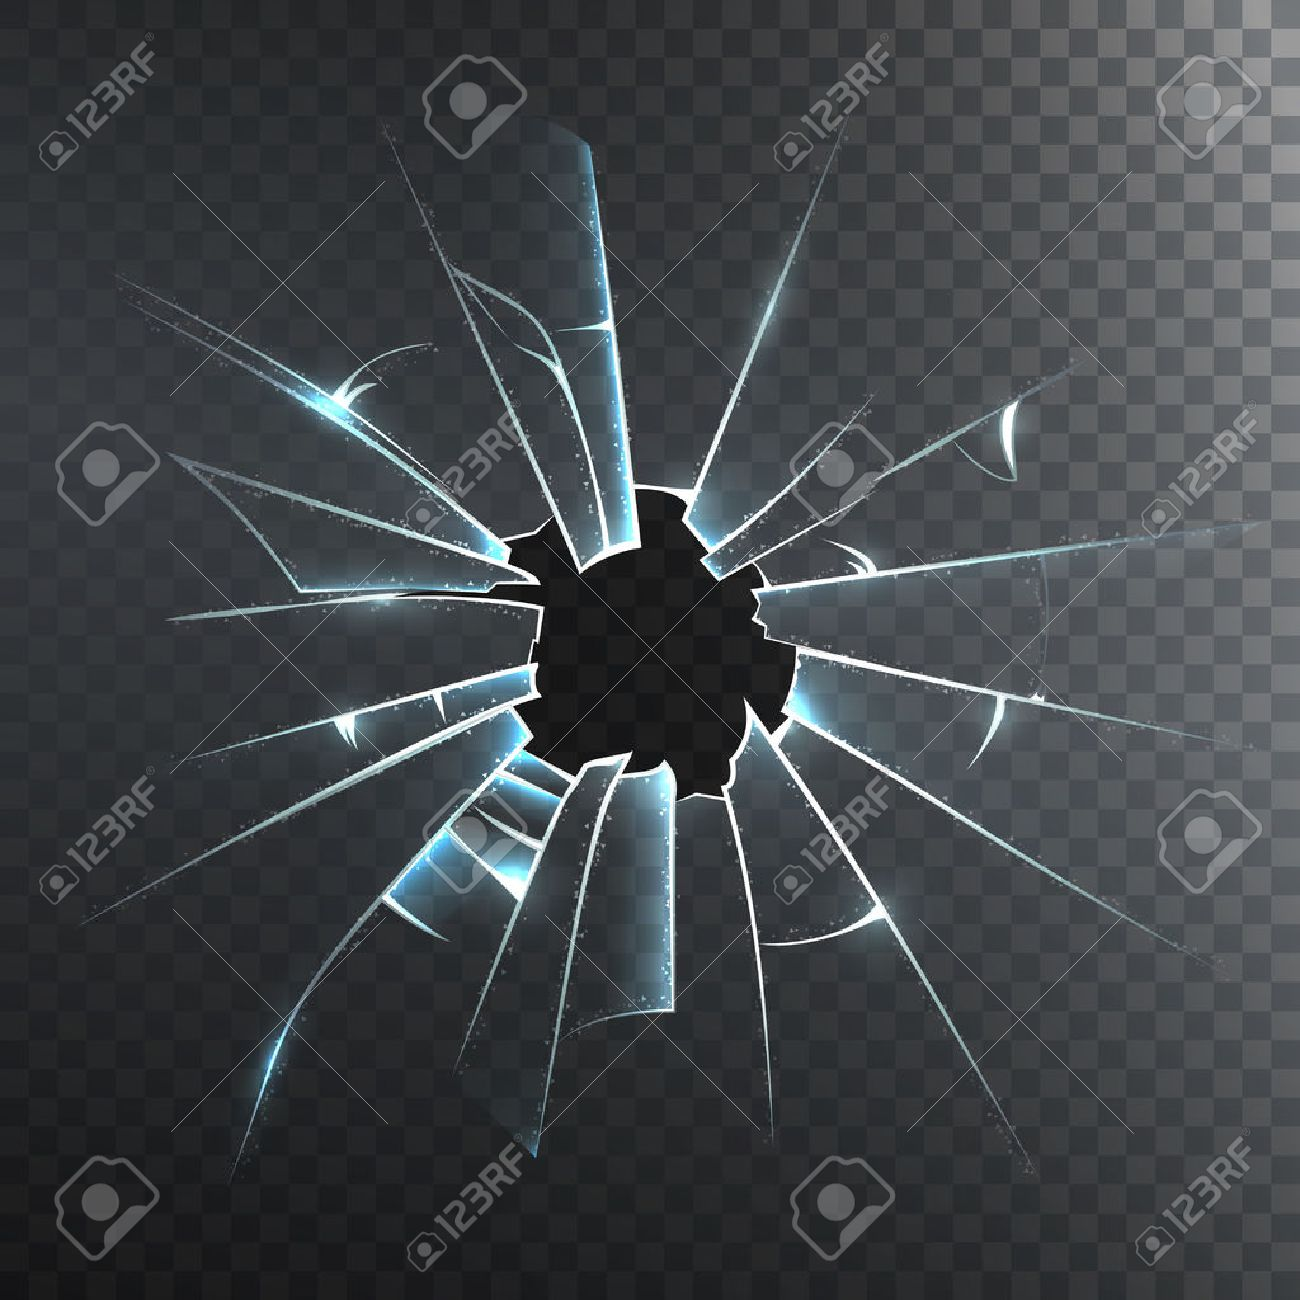 Accidentally broken frosted window pane or front door glass realistic decorative dark background icon vector illustration Stock Vector - 52698103